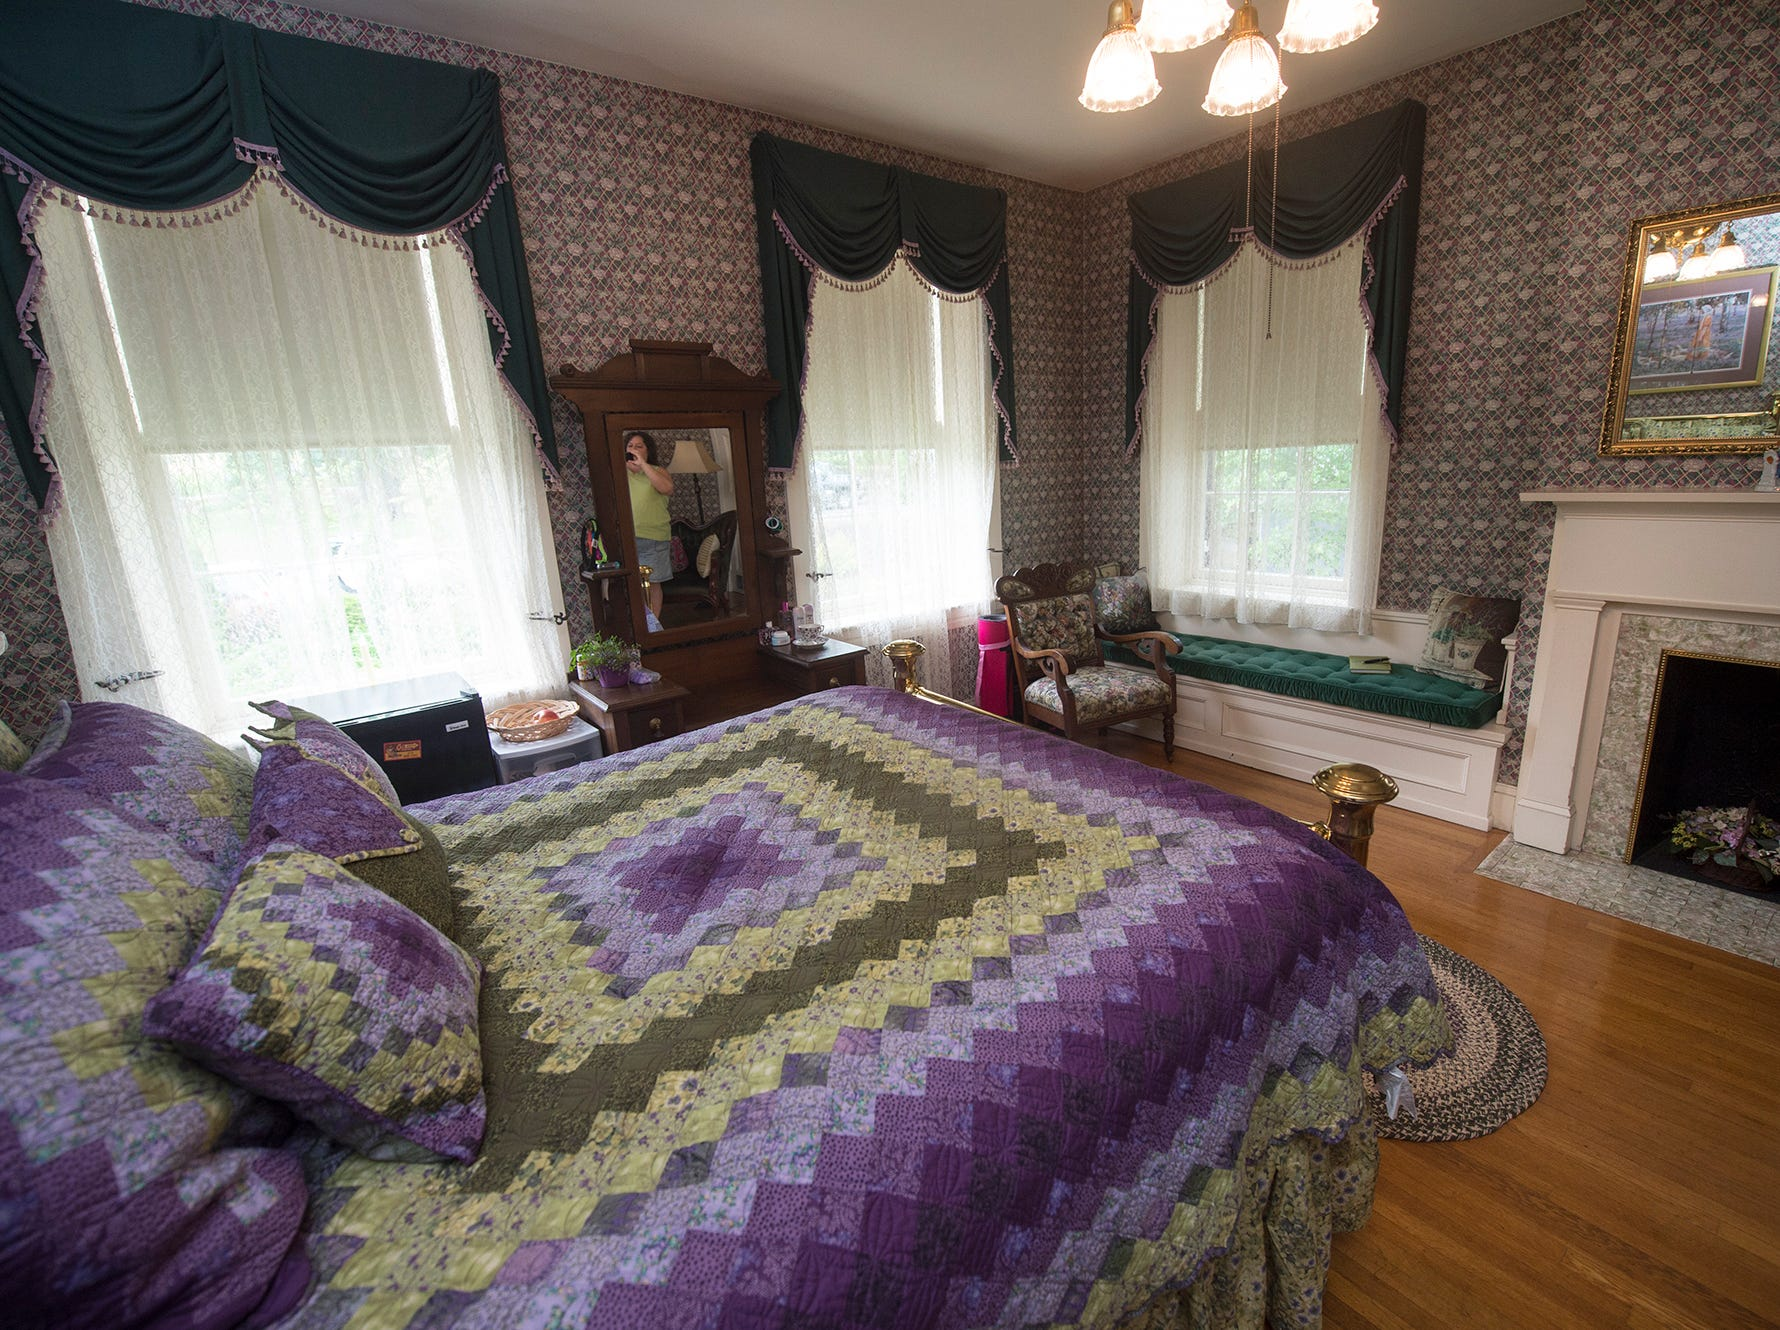 A second floor bedroom receives afternoon light May 17, 2015.